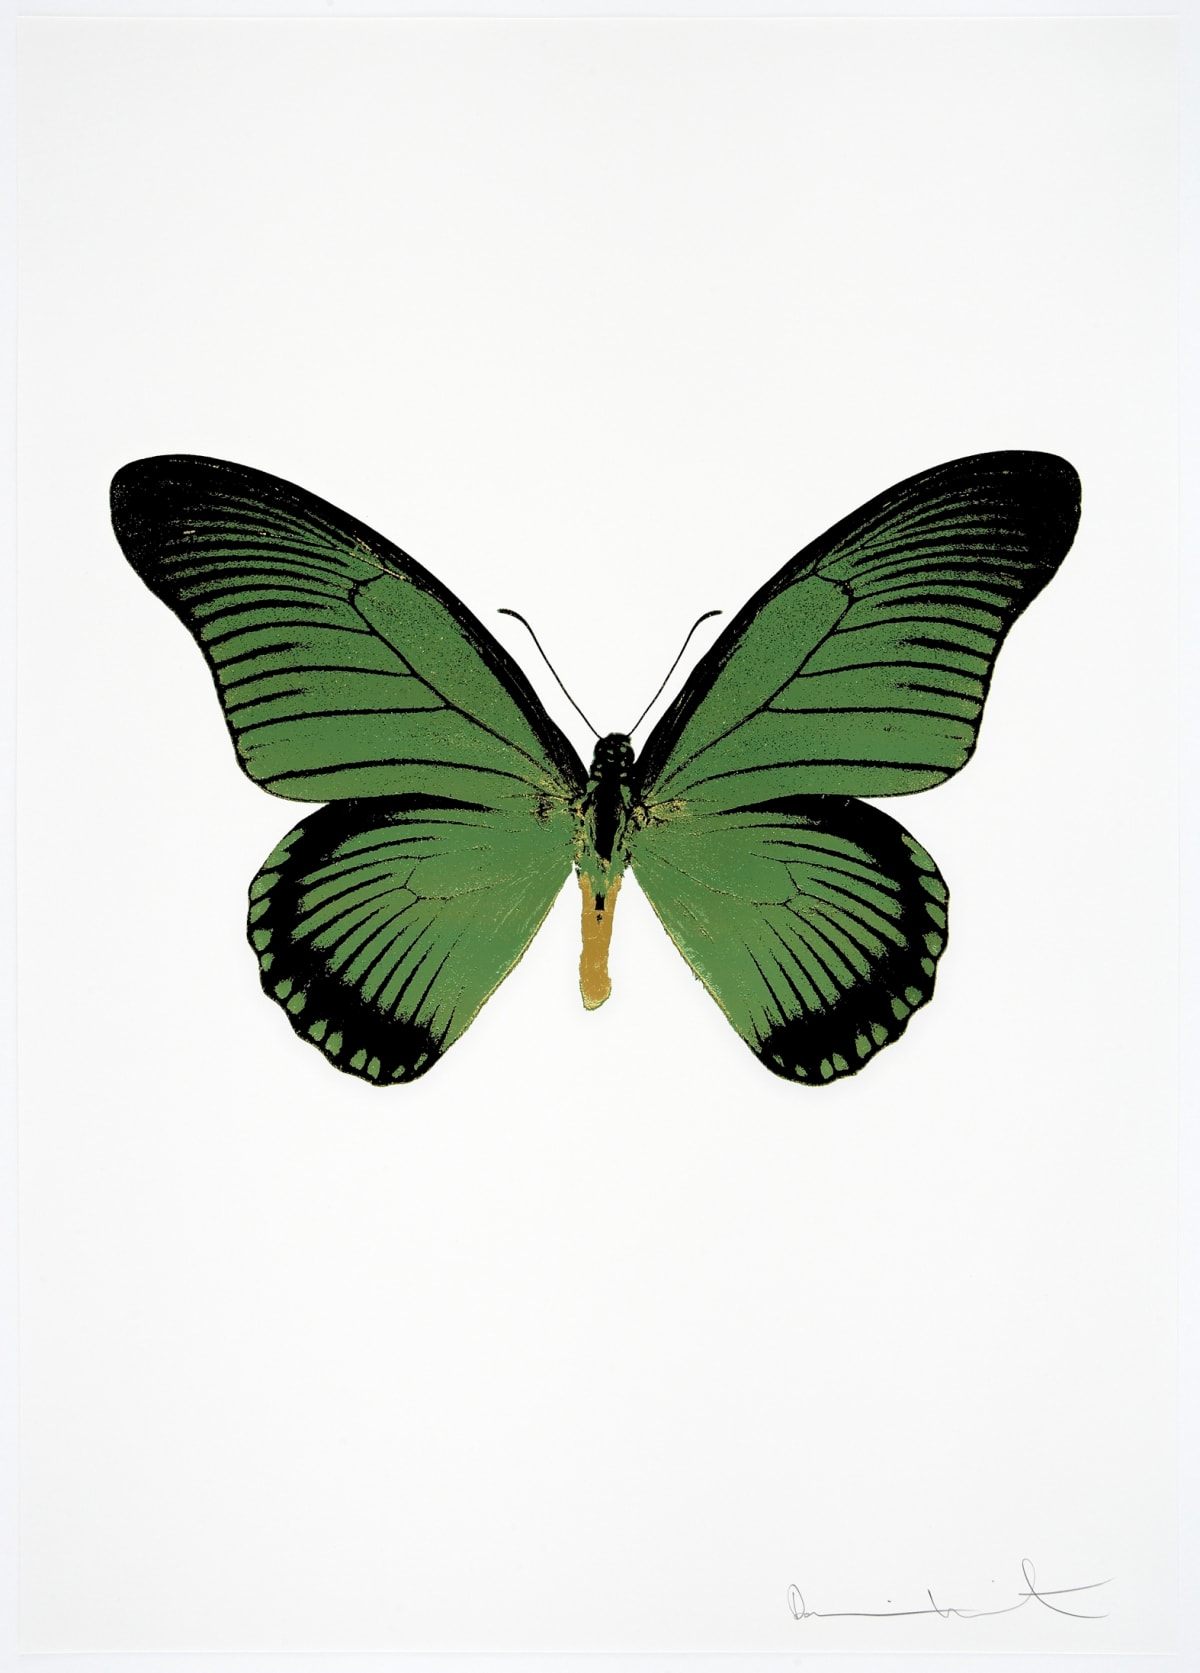 Damien Hirst The Souls IV - Leaf Green/Raven Black/Oriental Gold, 2010 3 colour foil block on 300gsm Arches 88 archival paper. Signed and numbered. Published by Paul Stolper and Other Criteria 72 x 51cm OC8035 / 1418-58 Edition of 15